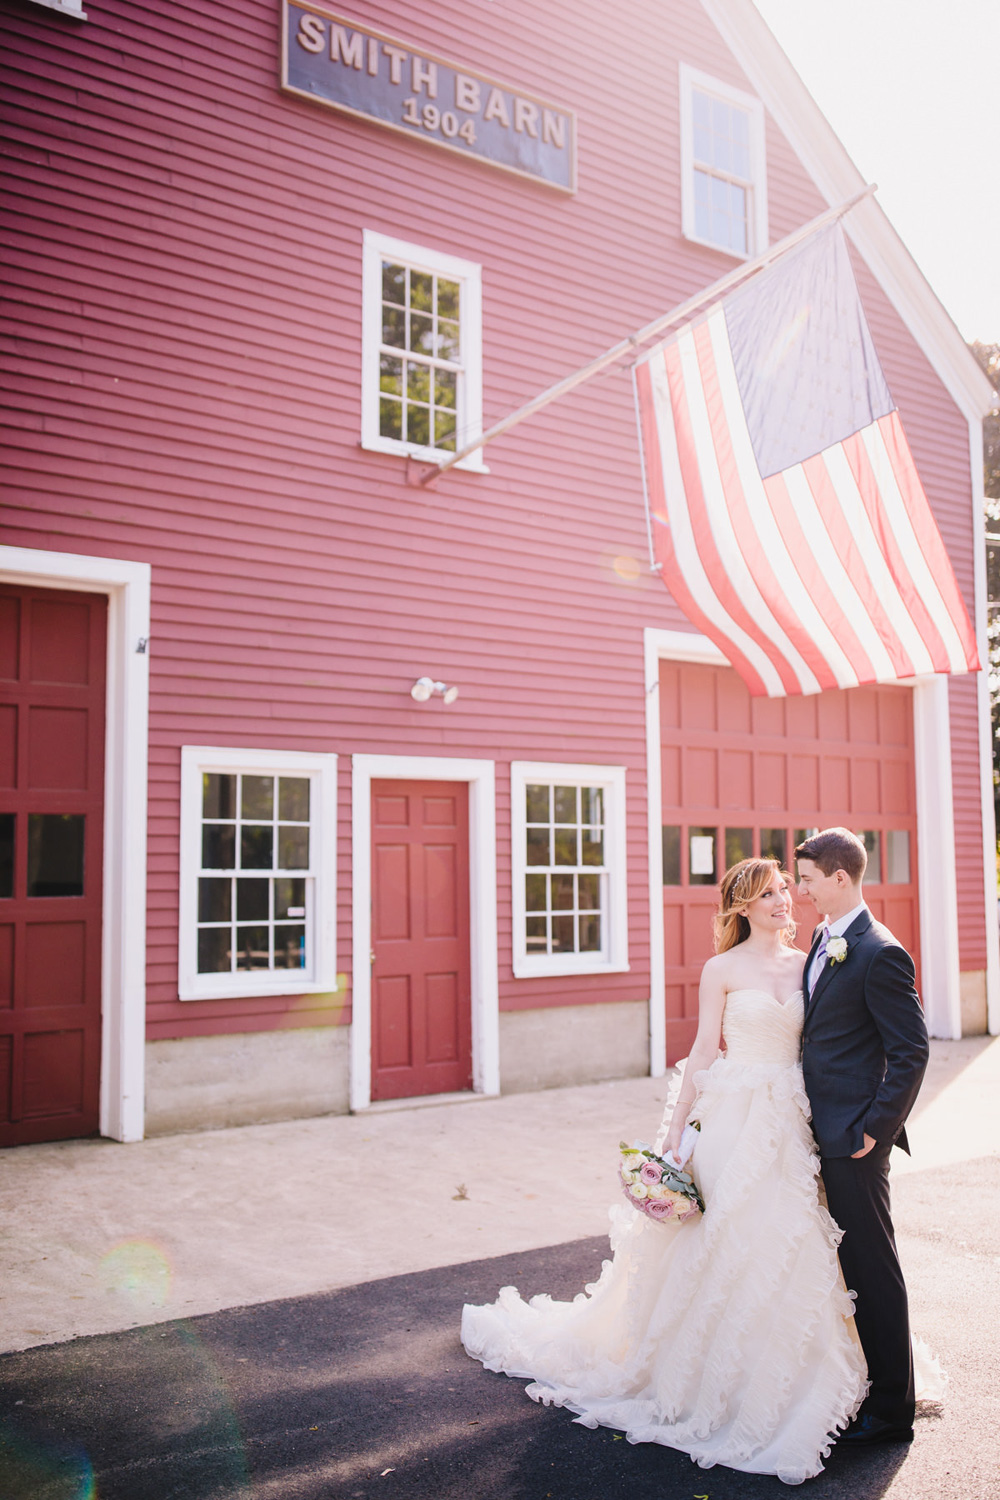 033-smith-barn-wedding.jpg